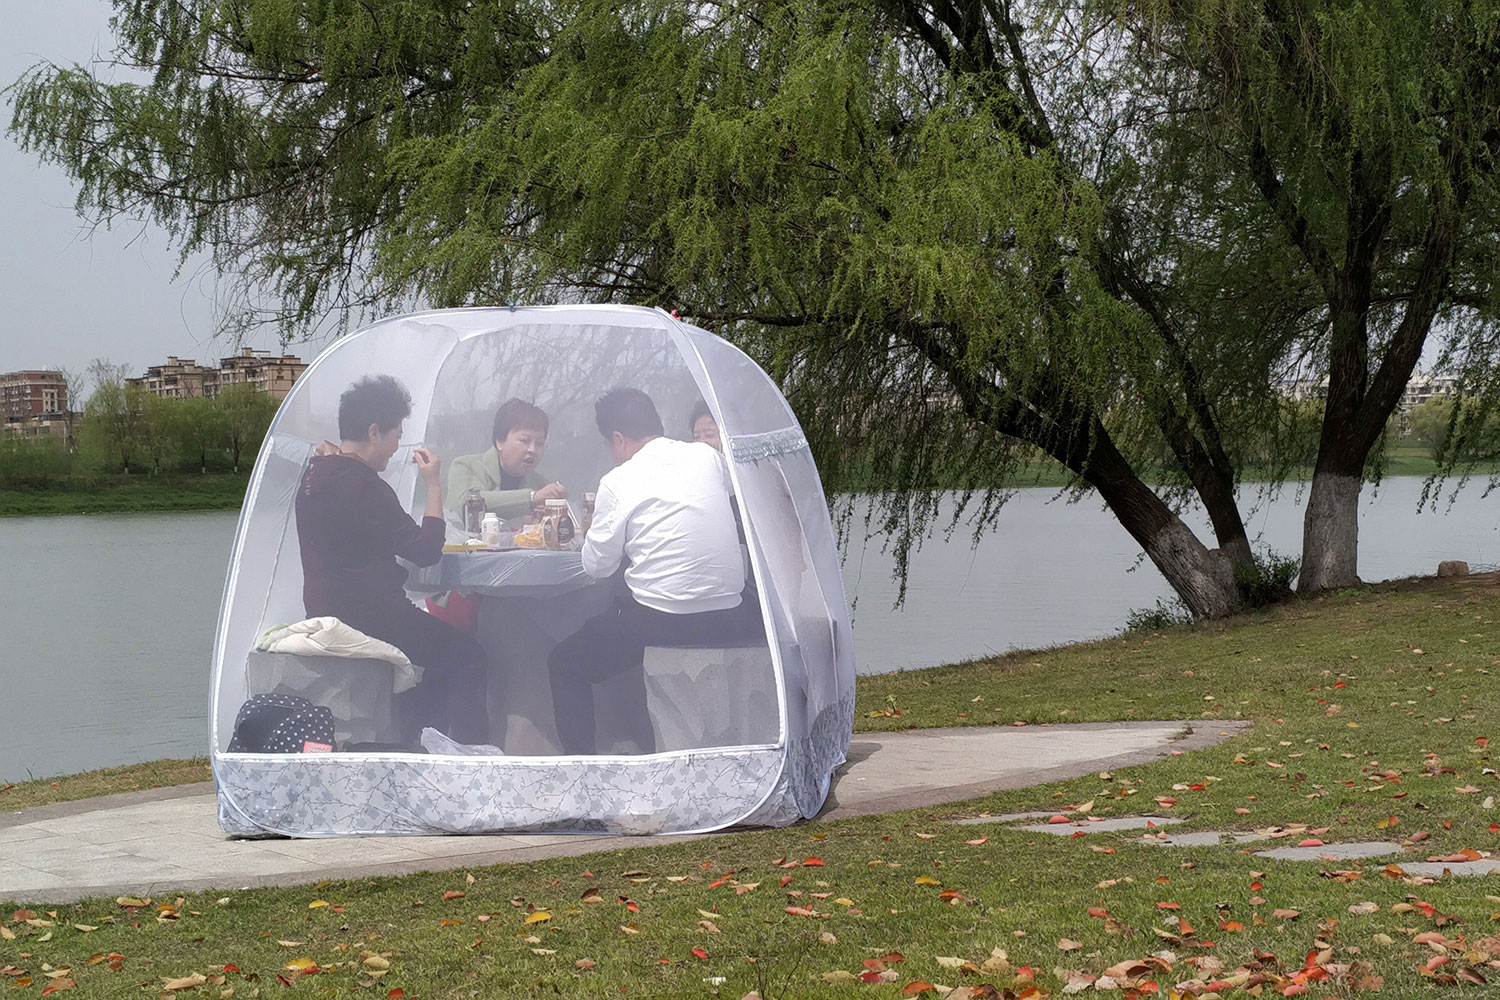 The photo shows a family in a bubble tent in a park on a beautiful day. Picture taken March 24, 2020.